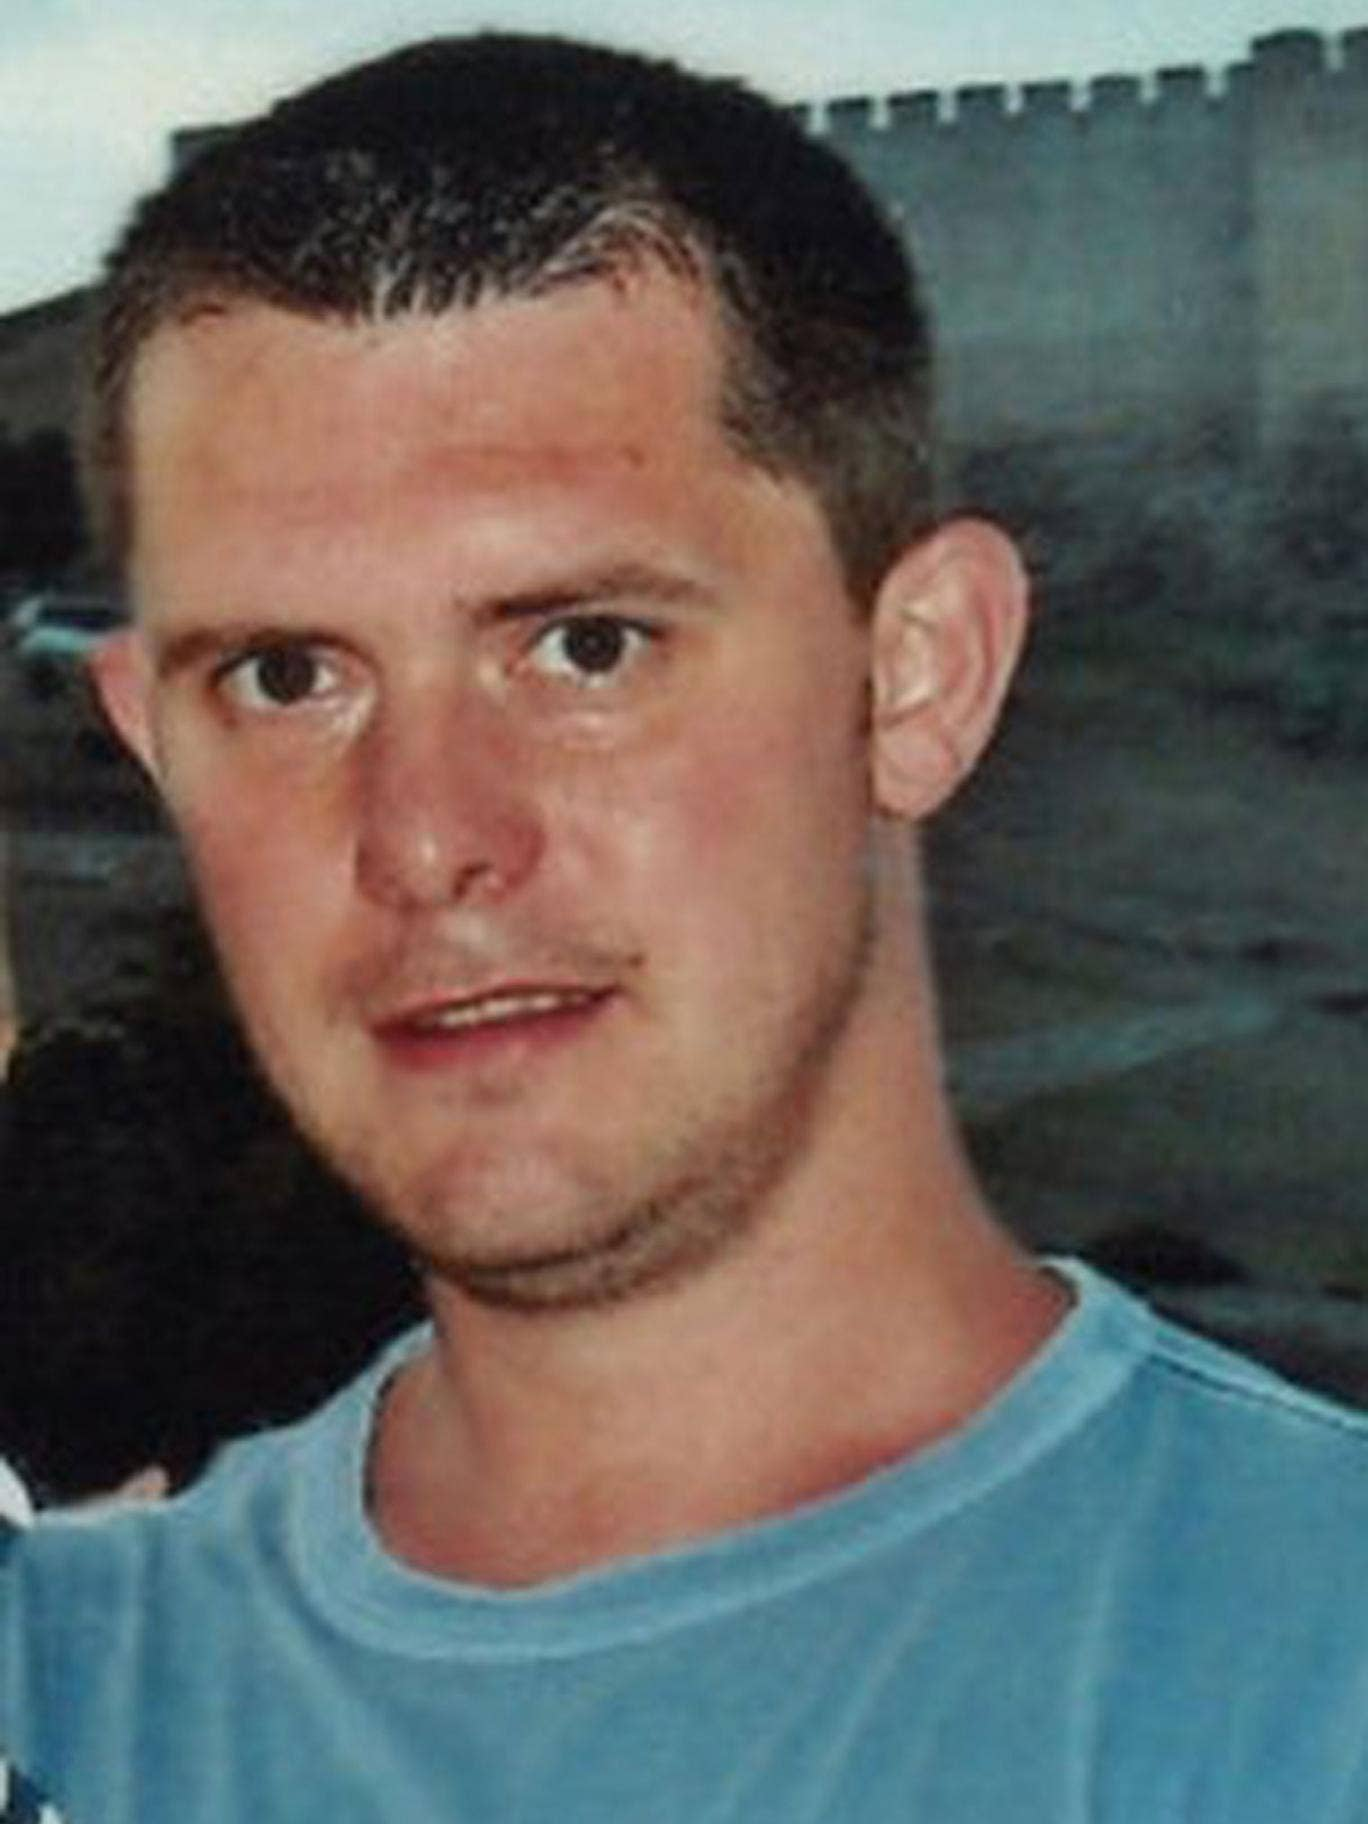 Christopher Foster was stabbed while having a cigarette with a friend in an alleyway outside a pub